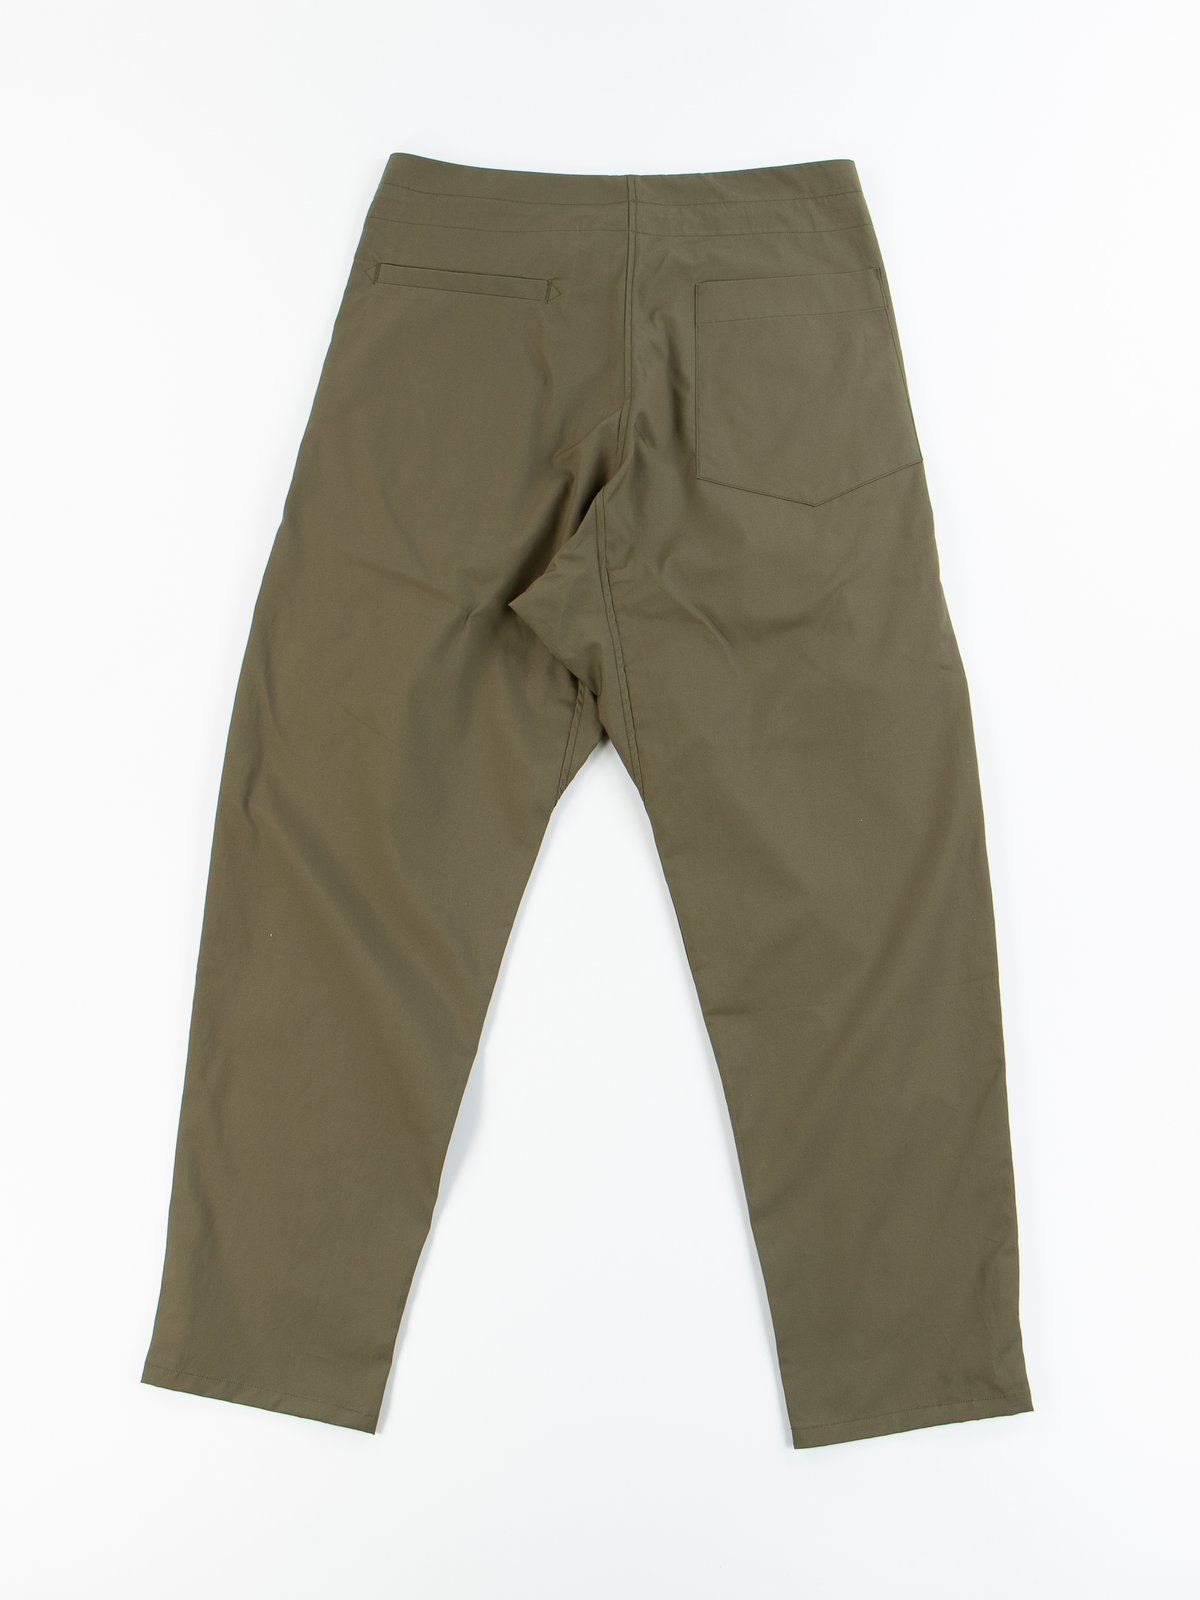 Olive Oxford Vancloth Drop Crotch Pant - Image 5